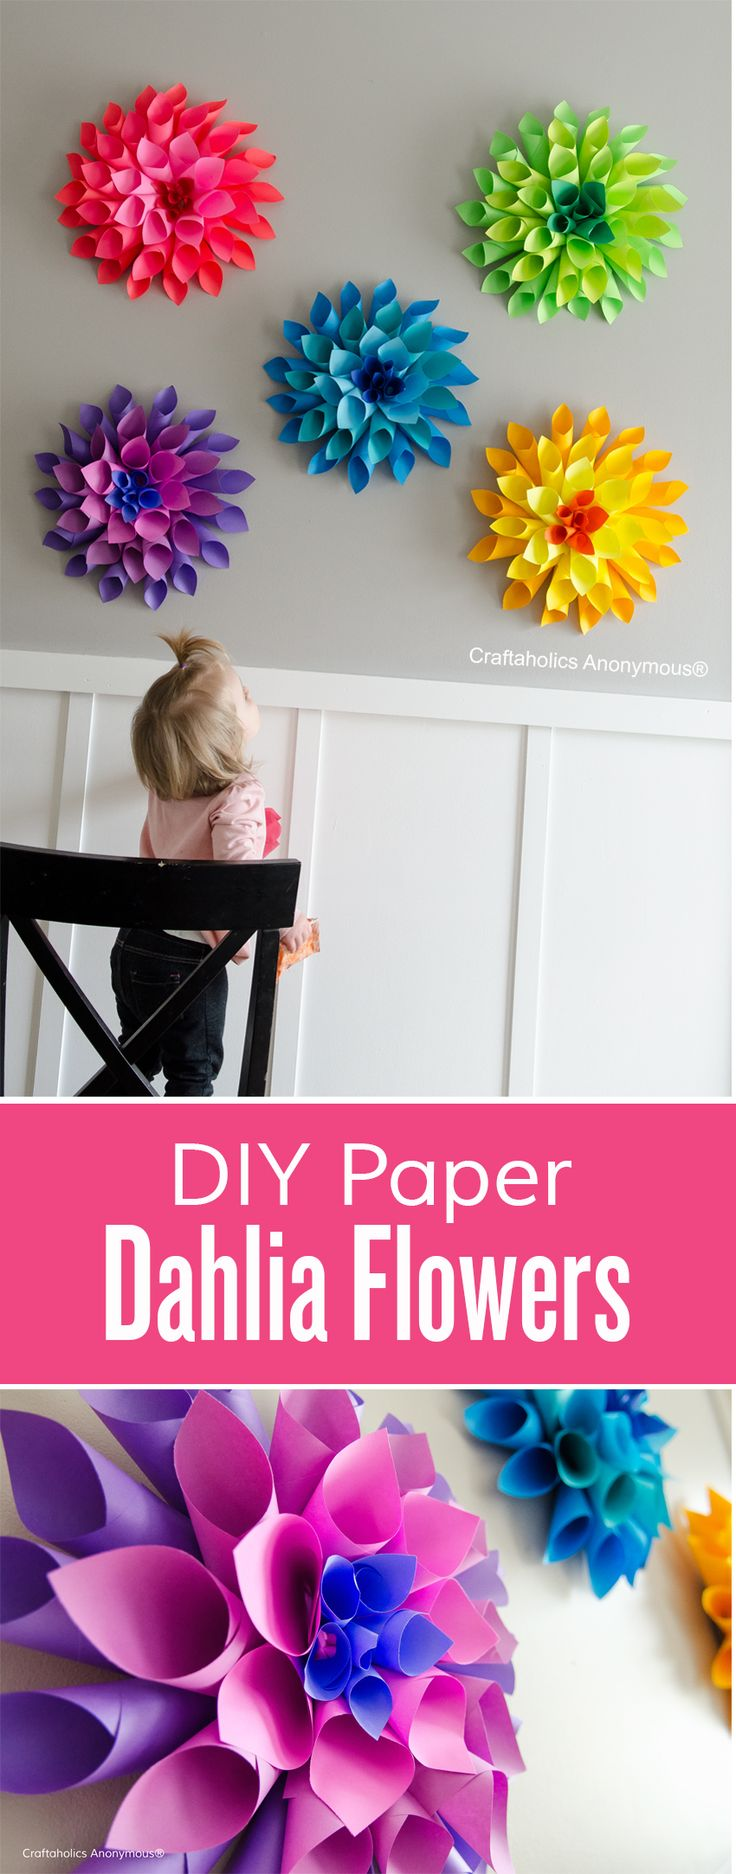 Diy room decor tutorials for teens - Rainbow Paper Dahlia Flowers Diy Crafts Roomdiy Crafts For Girlsspring